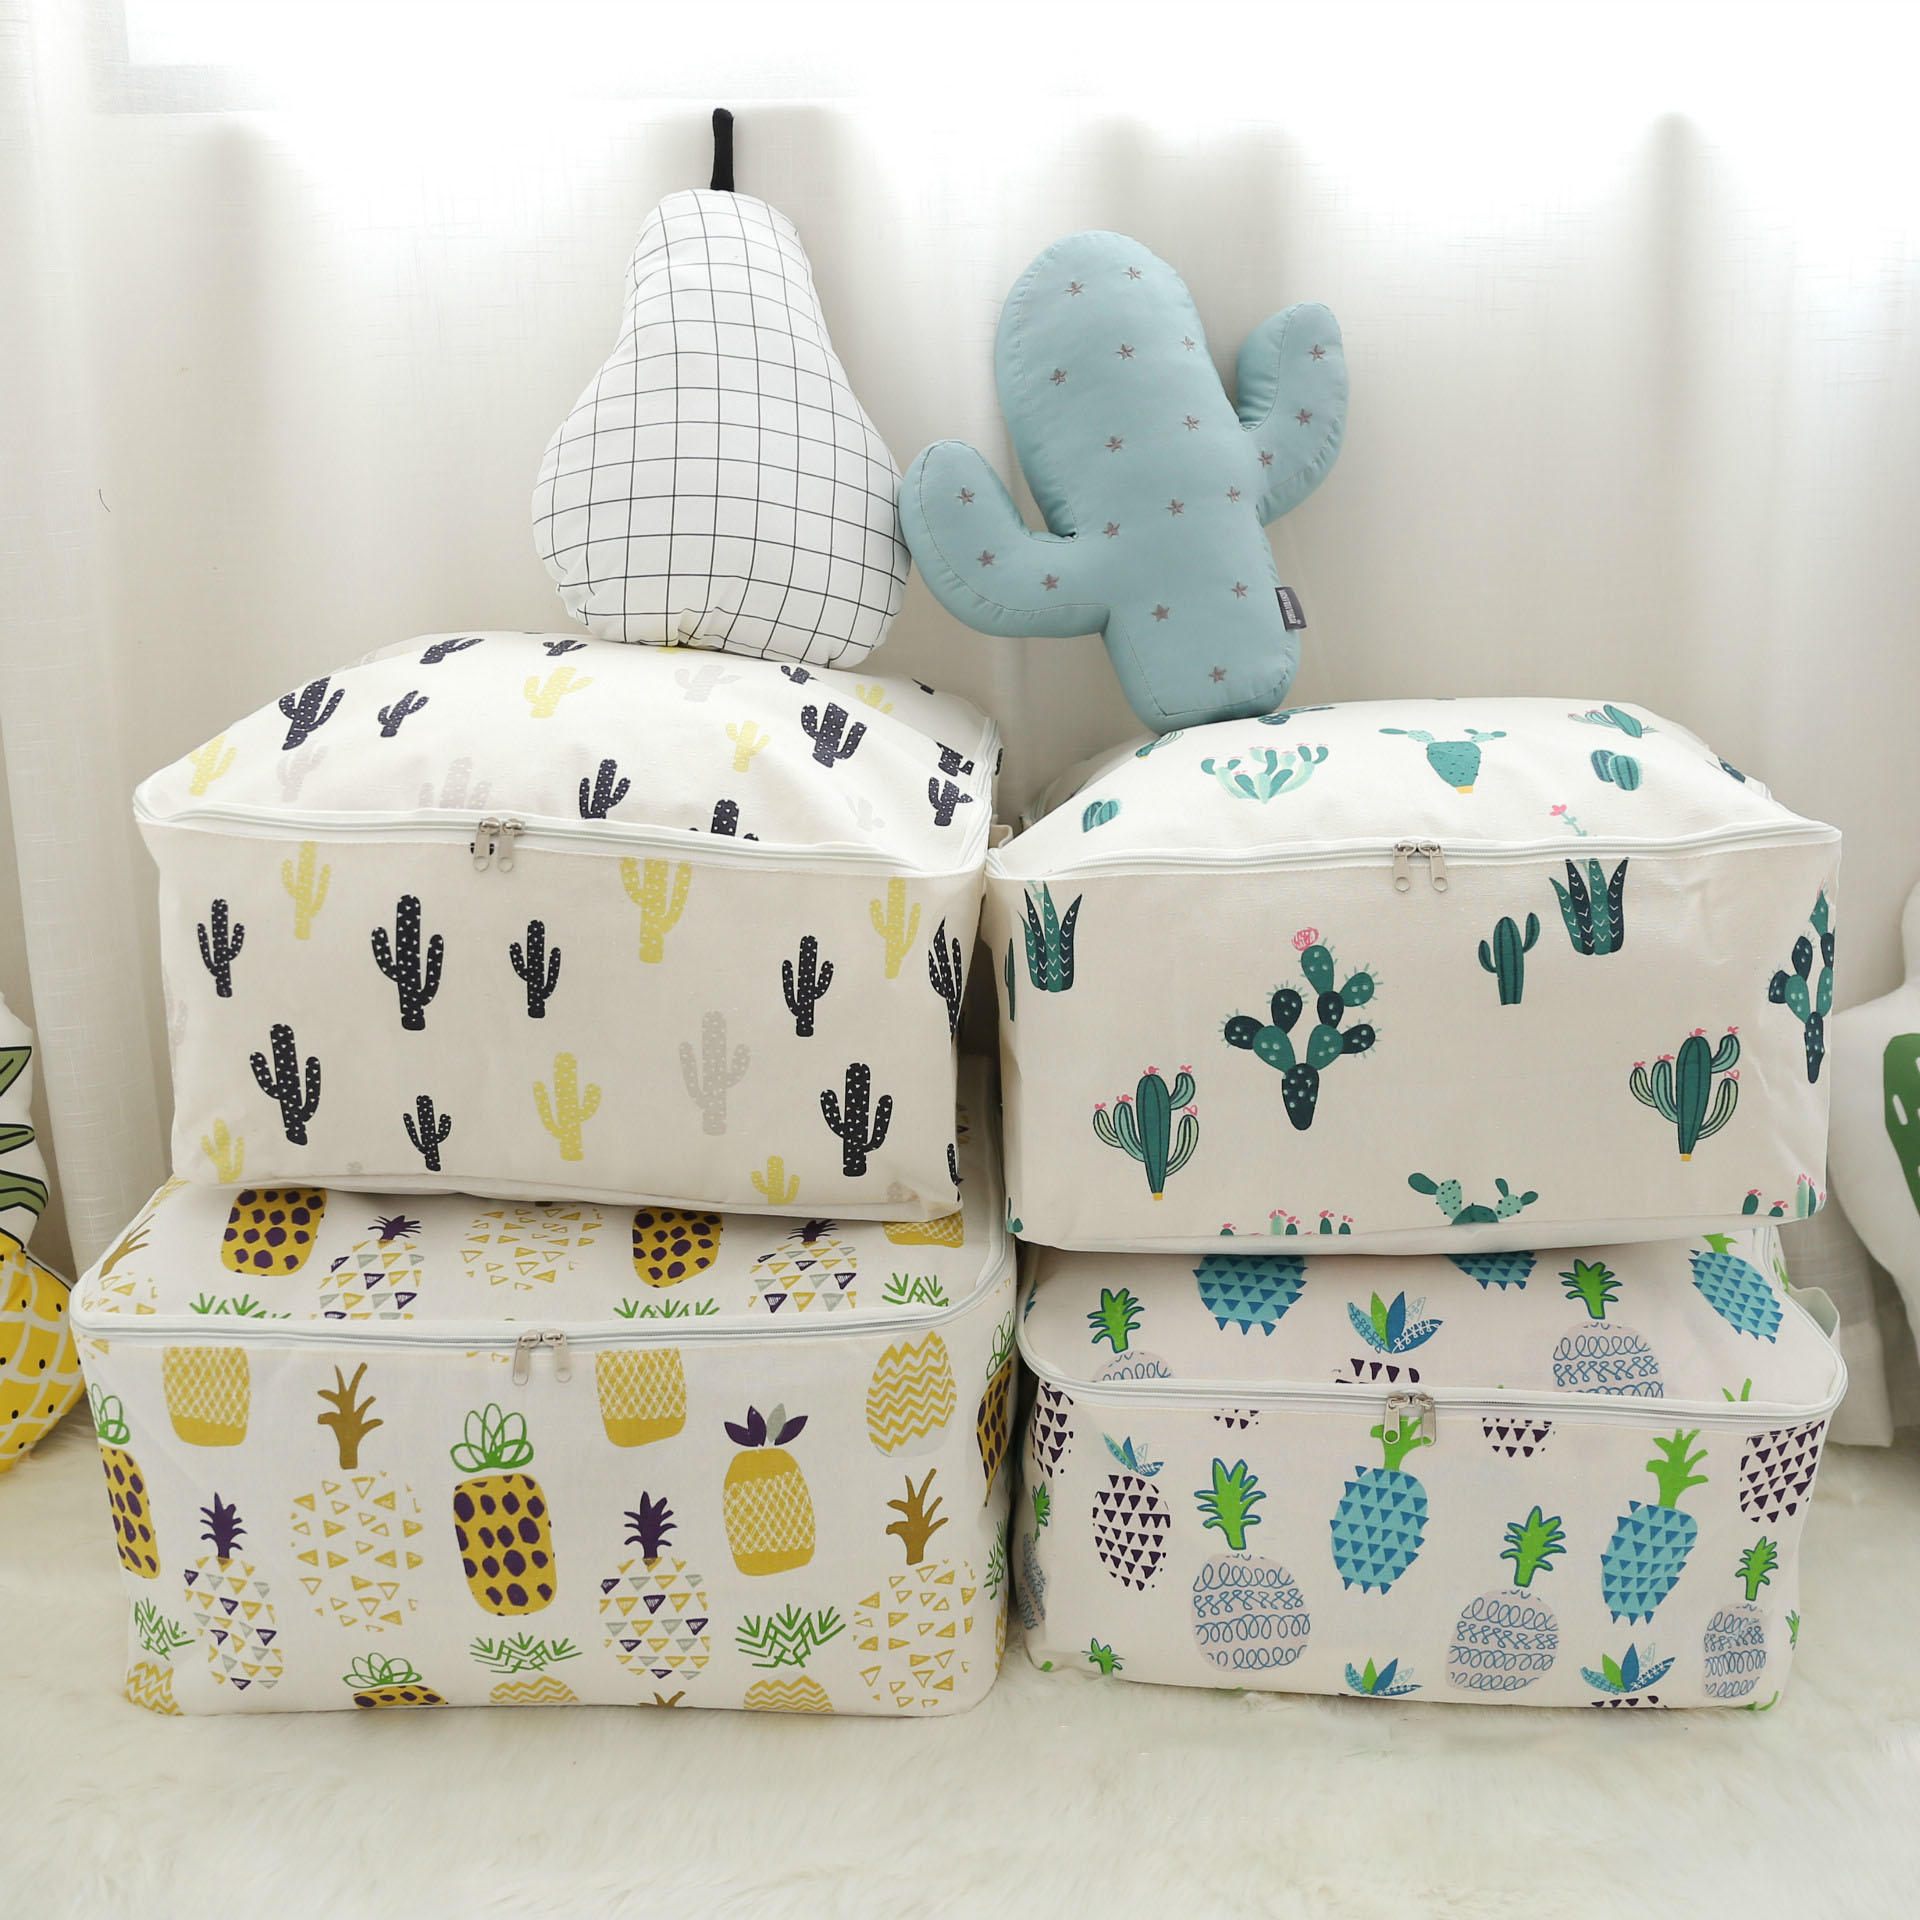 Honana Signature Cotton Storage Bag Portable Folding Organizer Quilt Pouch Washable Container Anese Style